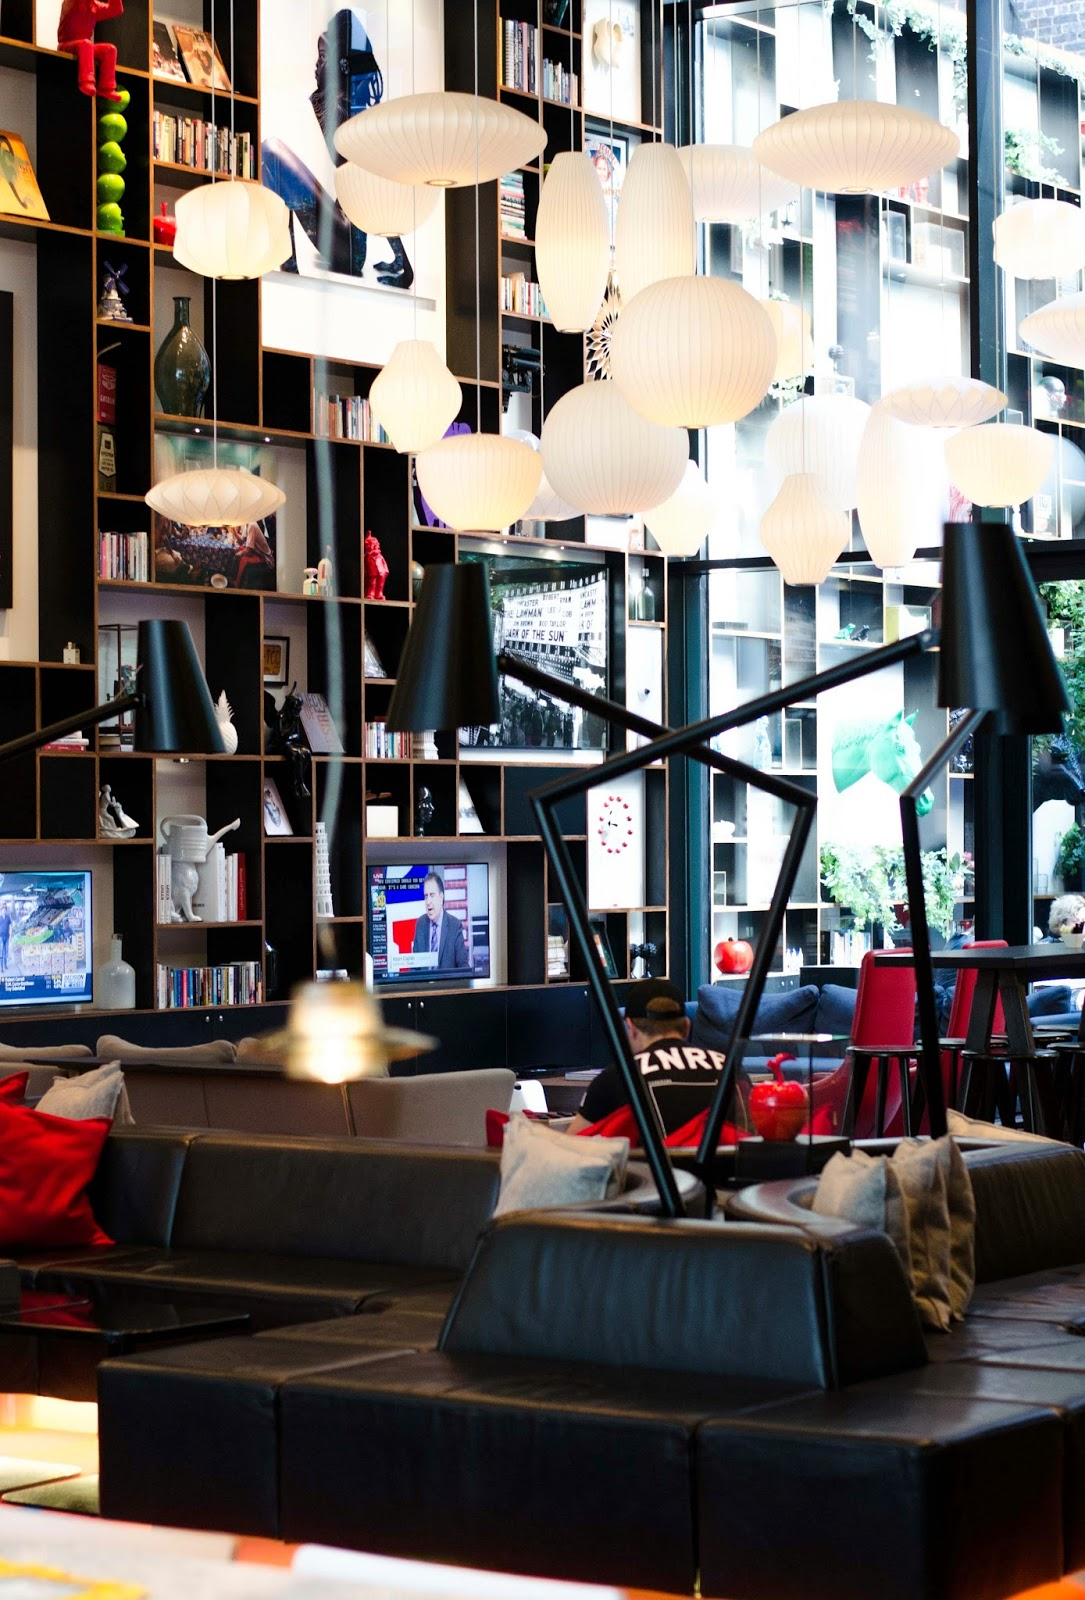 citizenm new york times square hotel lobby